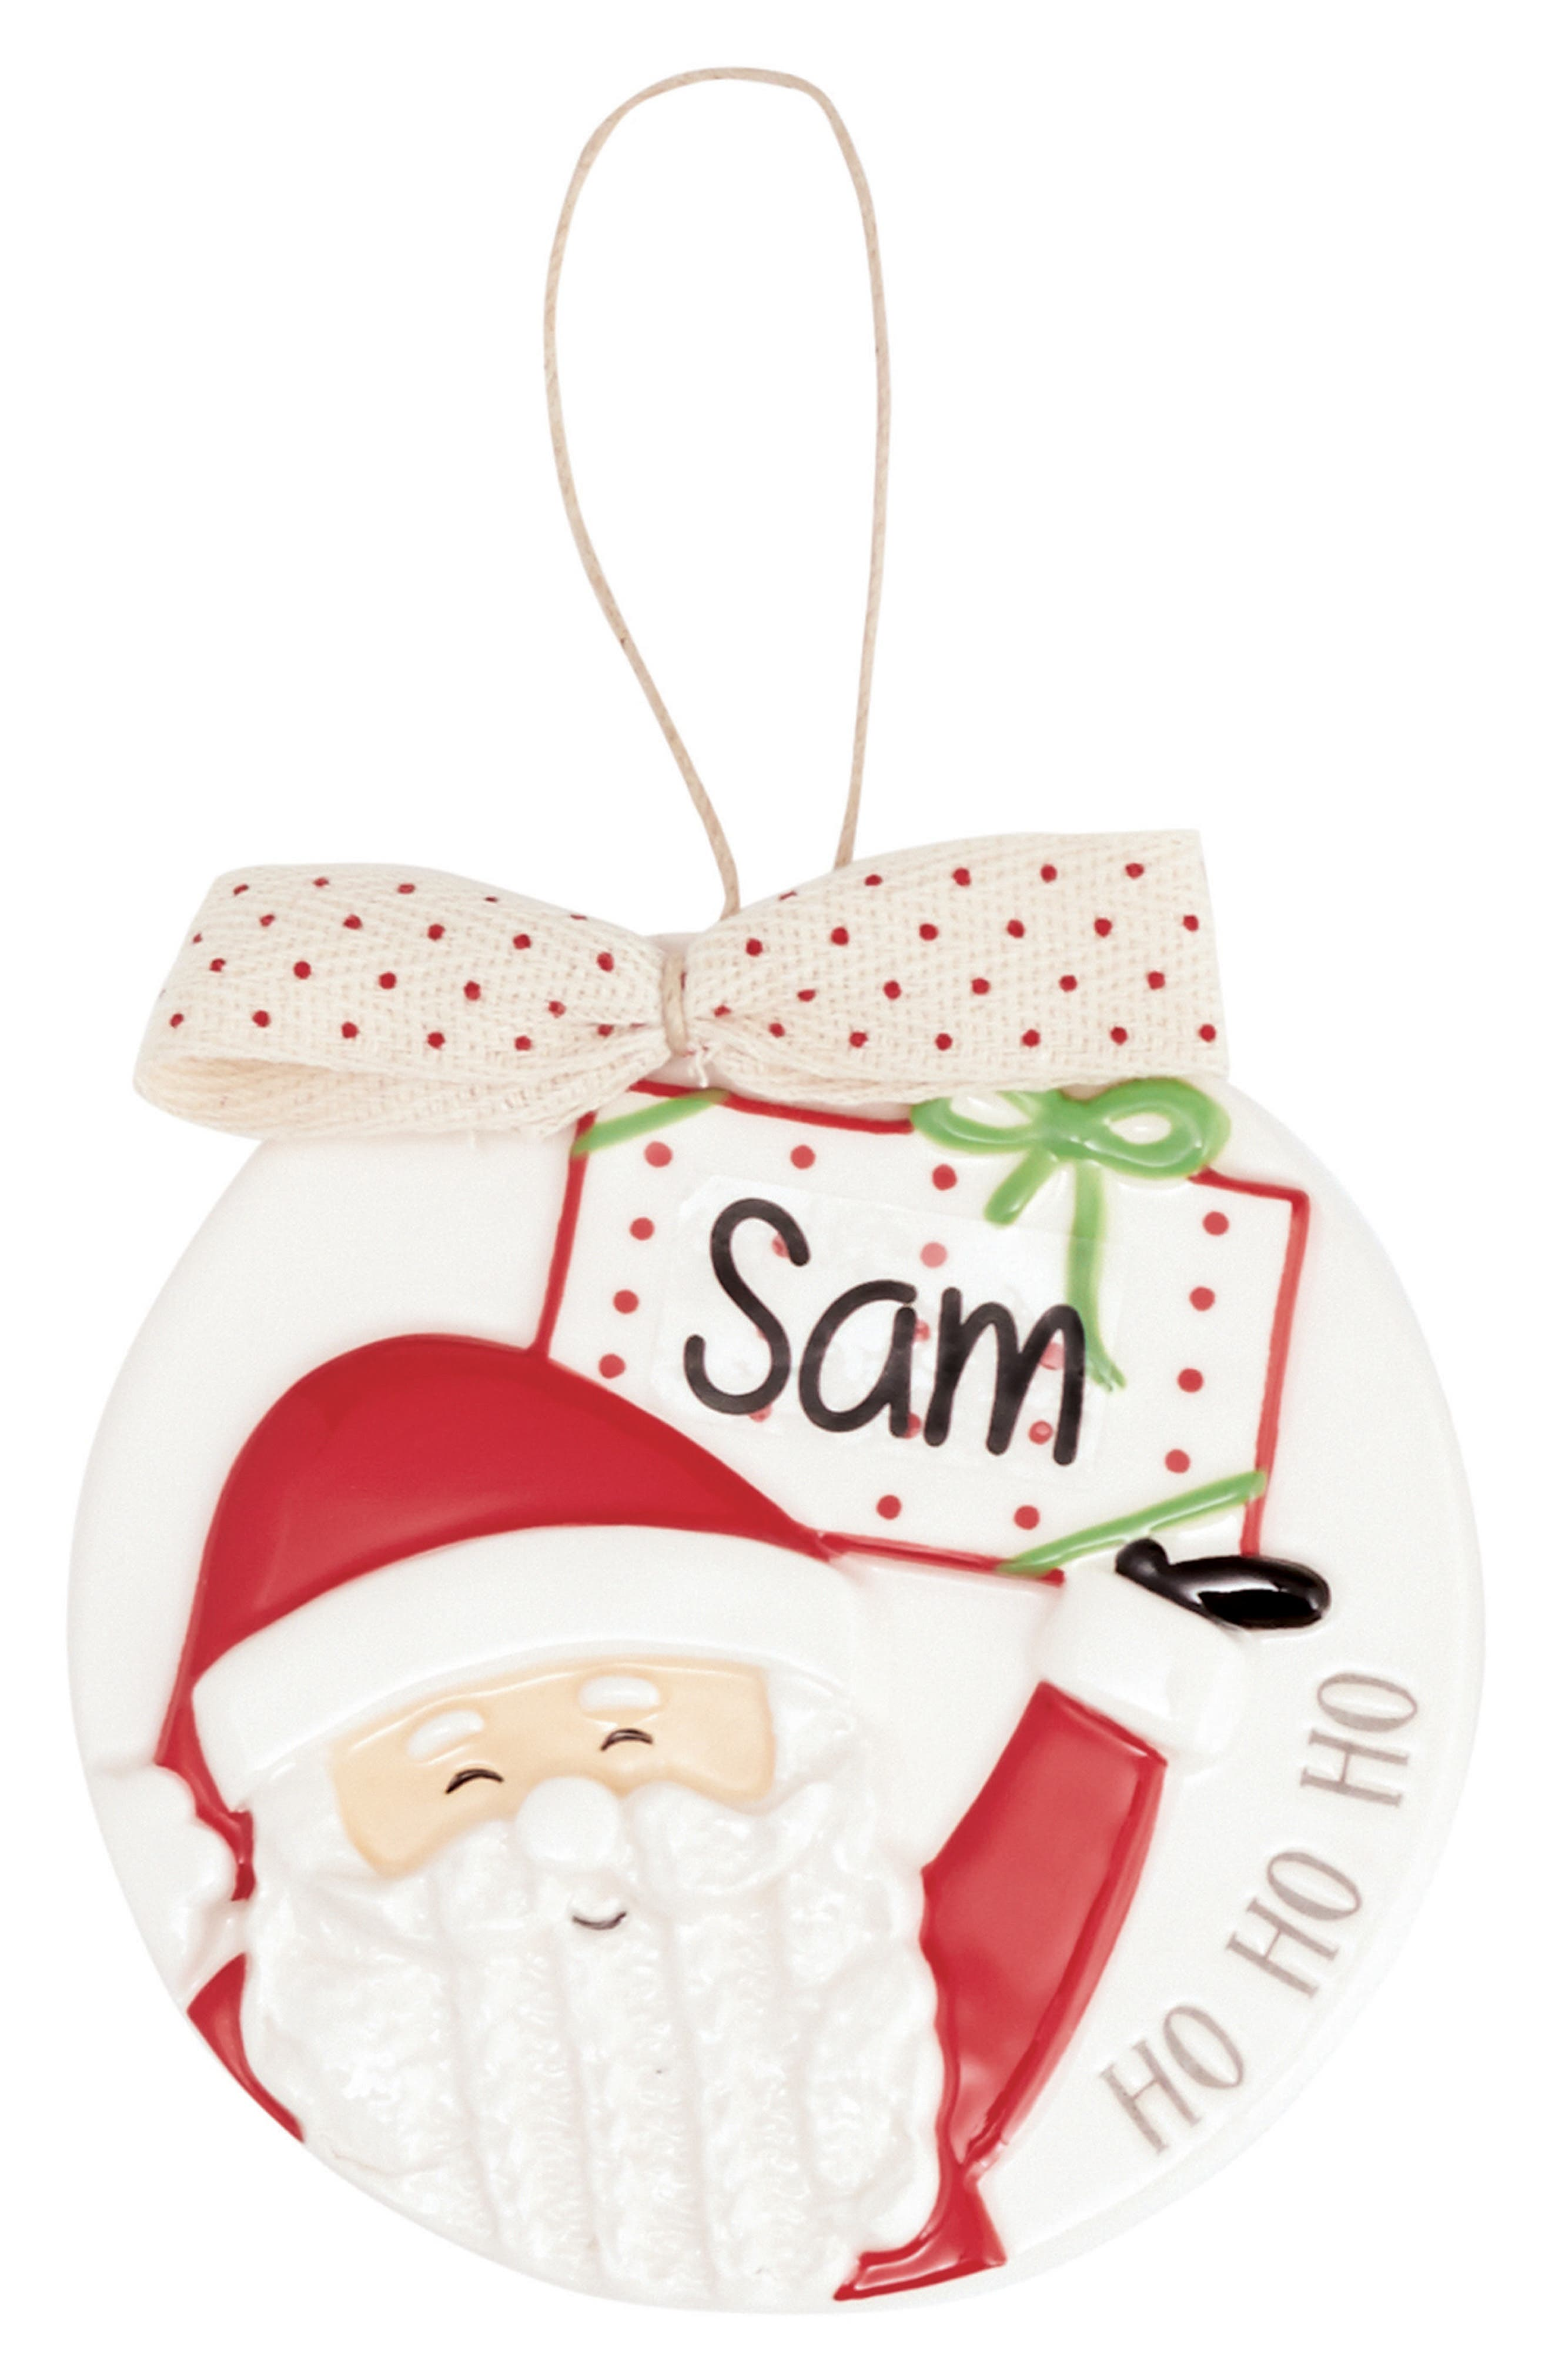 Alternate Image 1 Selected - Mud Pie Santa Ornament with Personalization Sticker